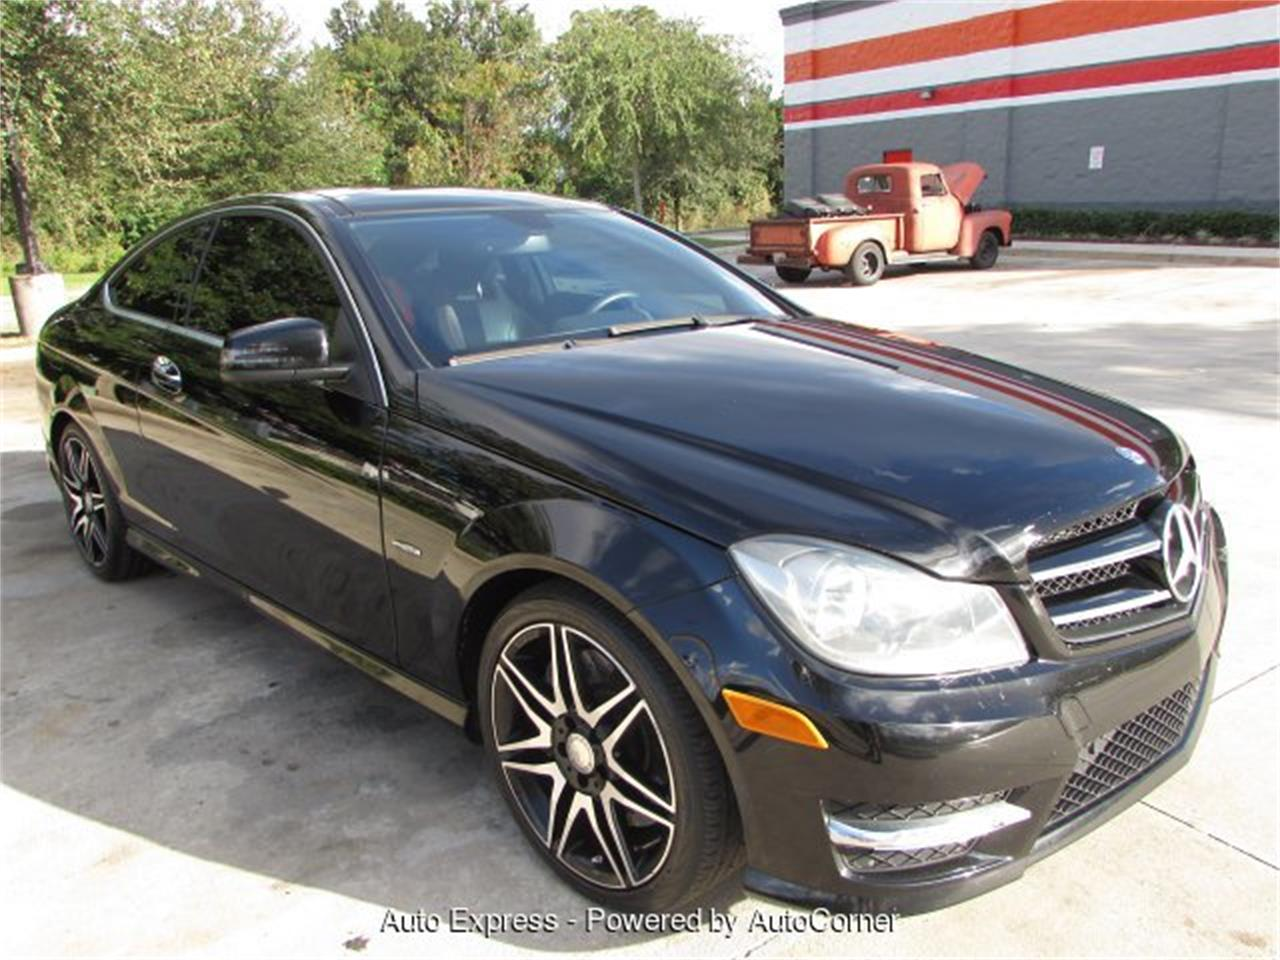 2013 Mercedes-Benz C250 for sale in Orlando, FL – photo 2